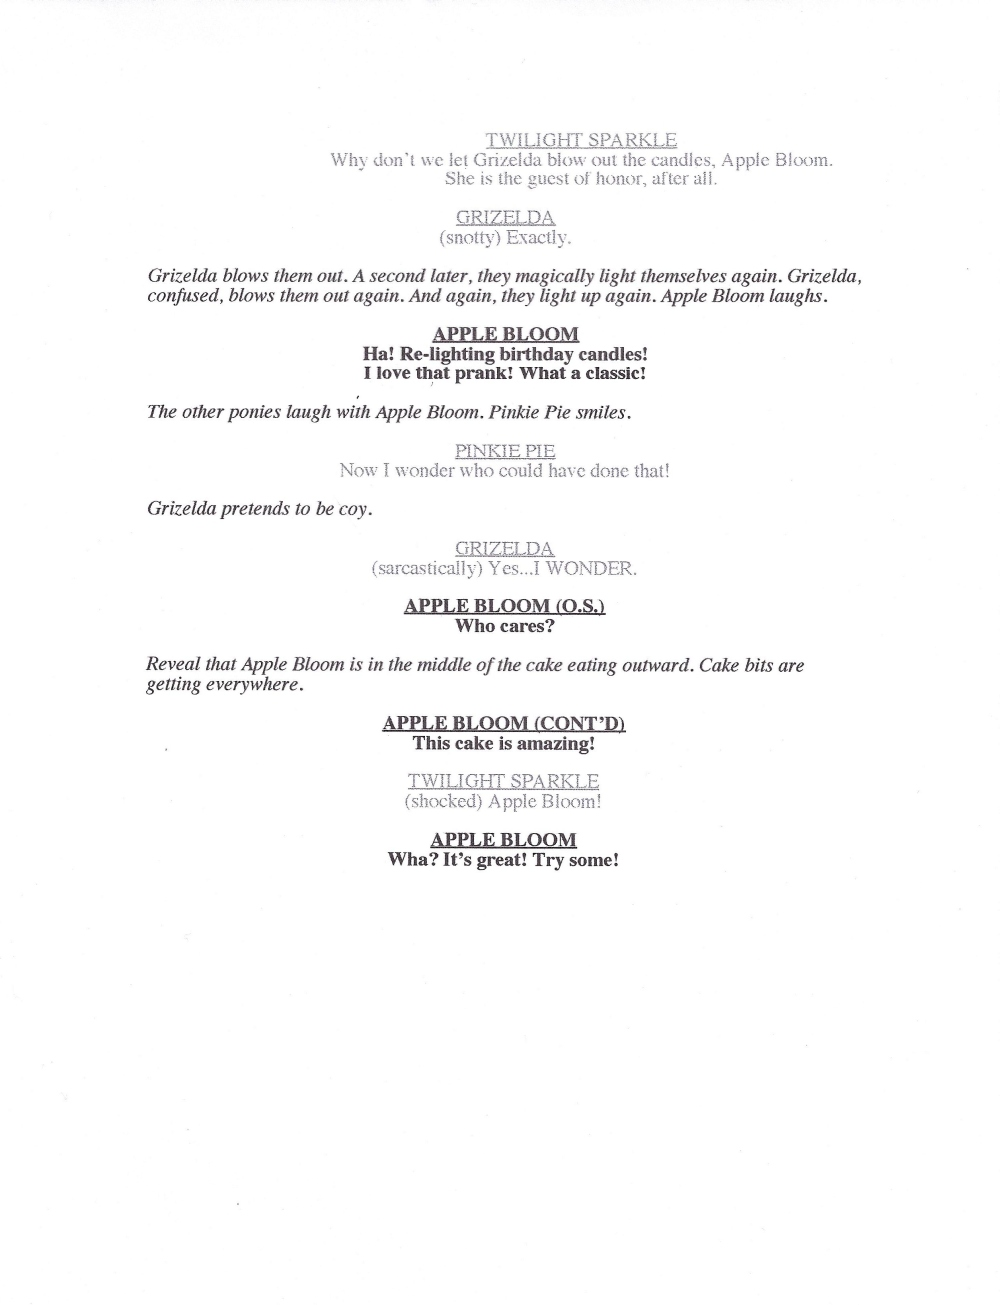 Food commercial scripts to use for auditions